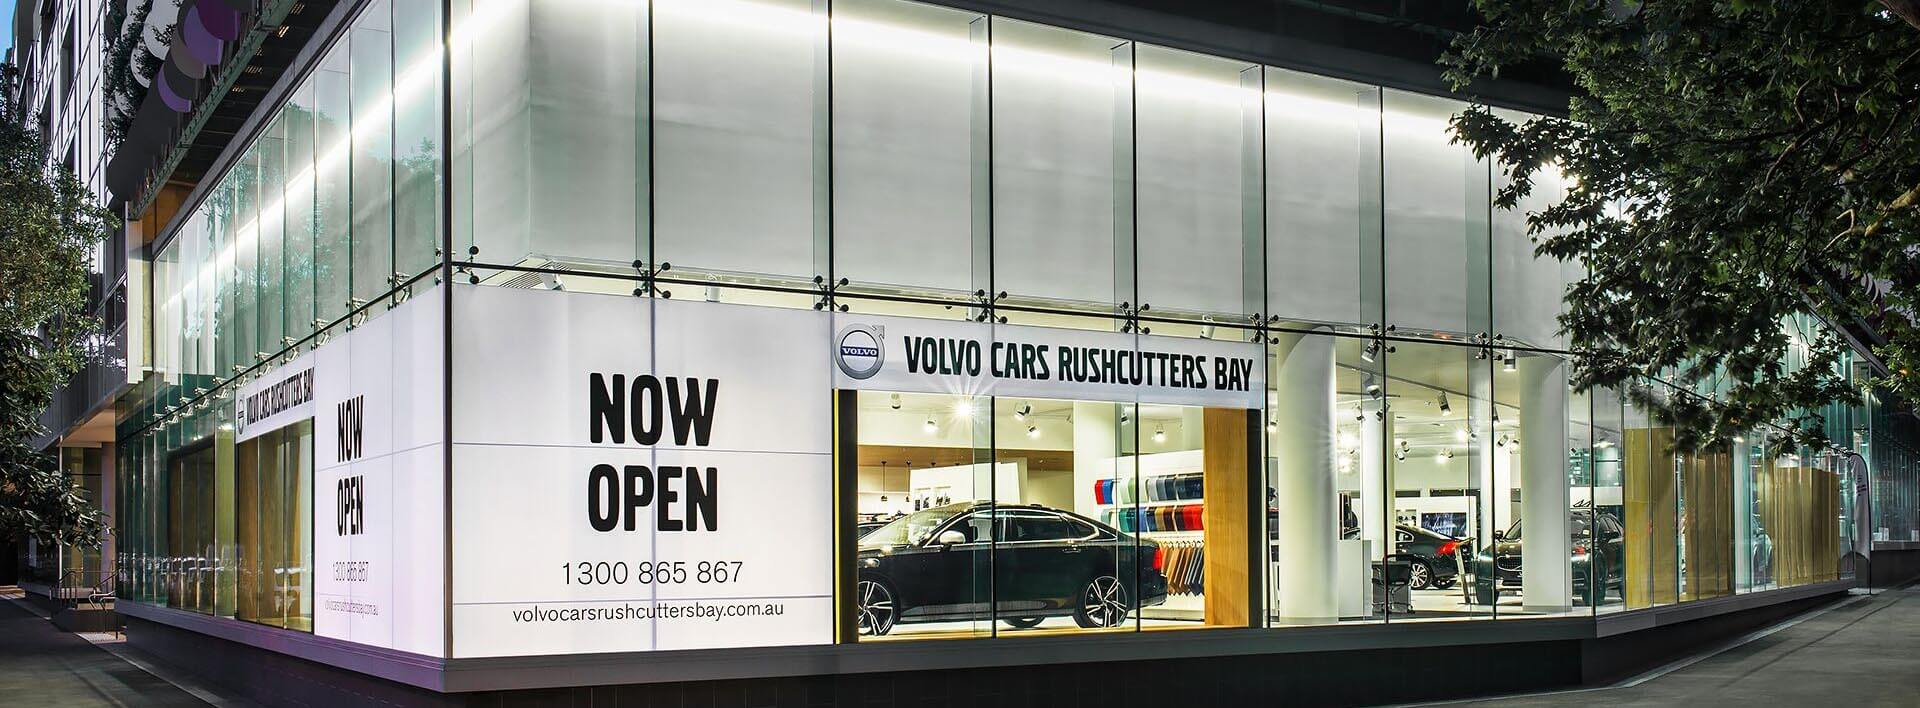 Volvo Cars Rushcutters Bay Sydney